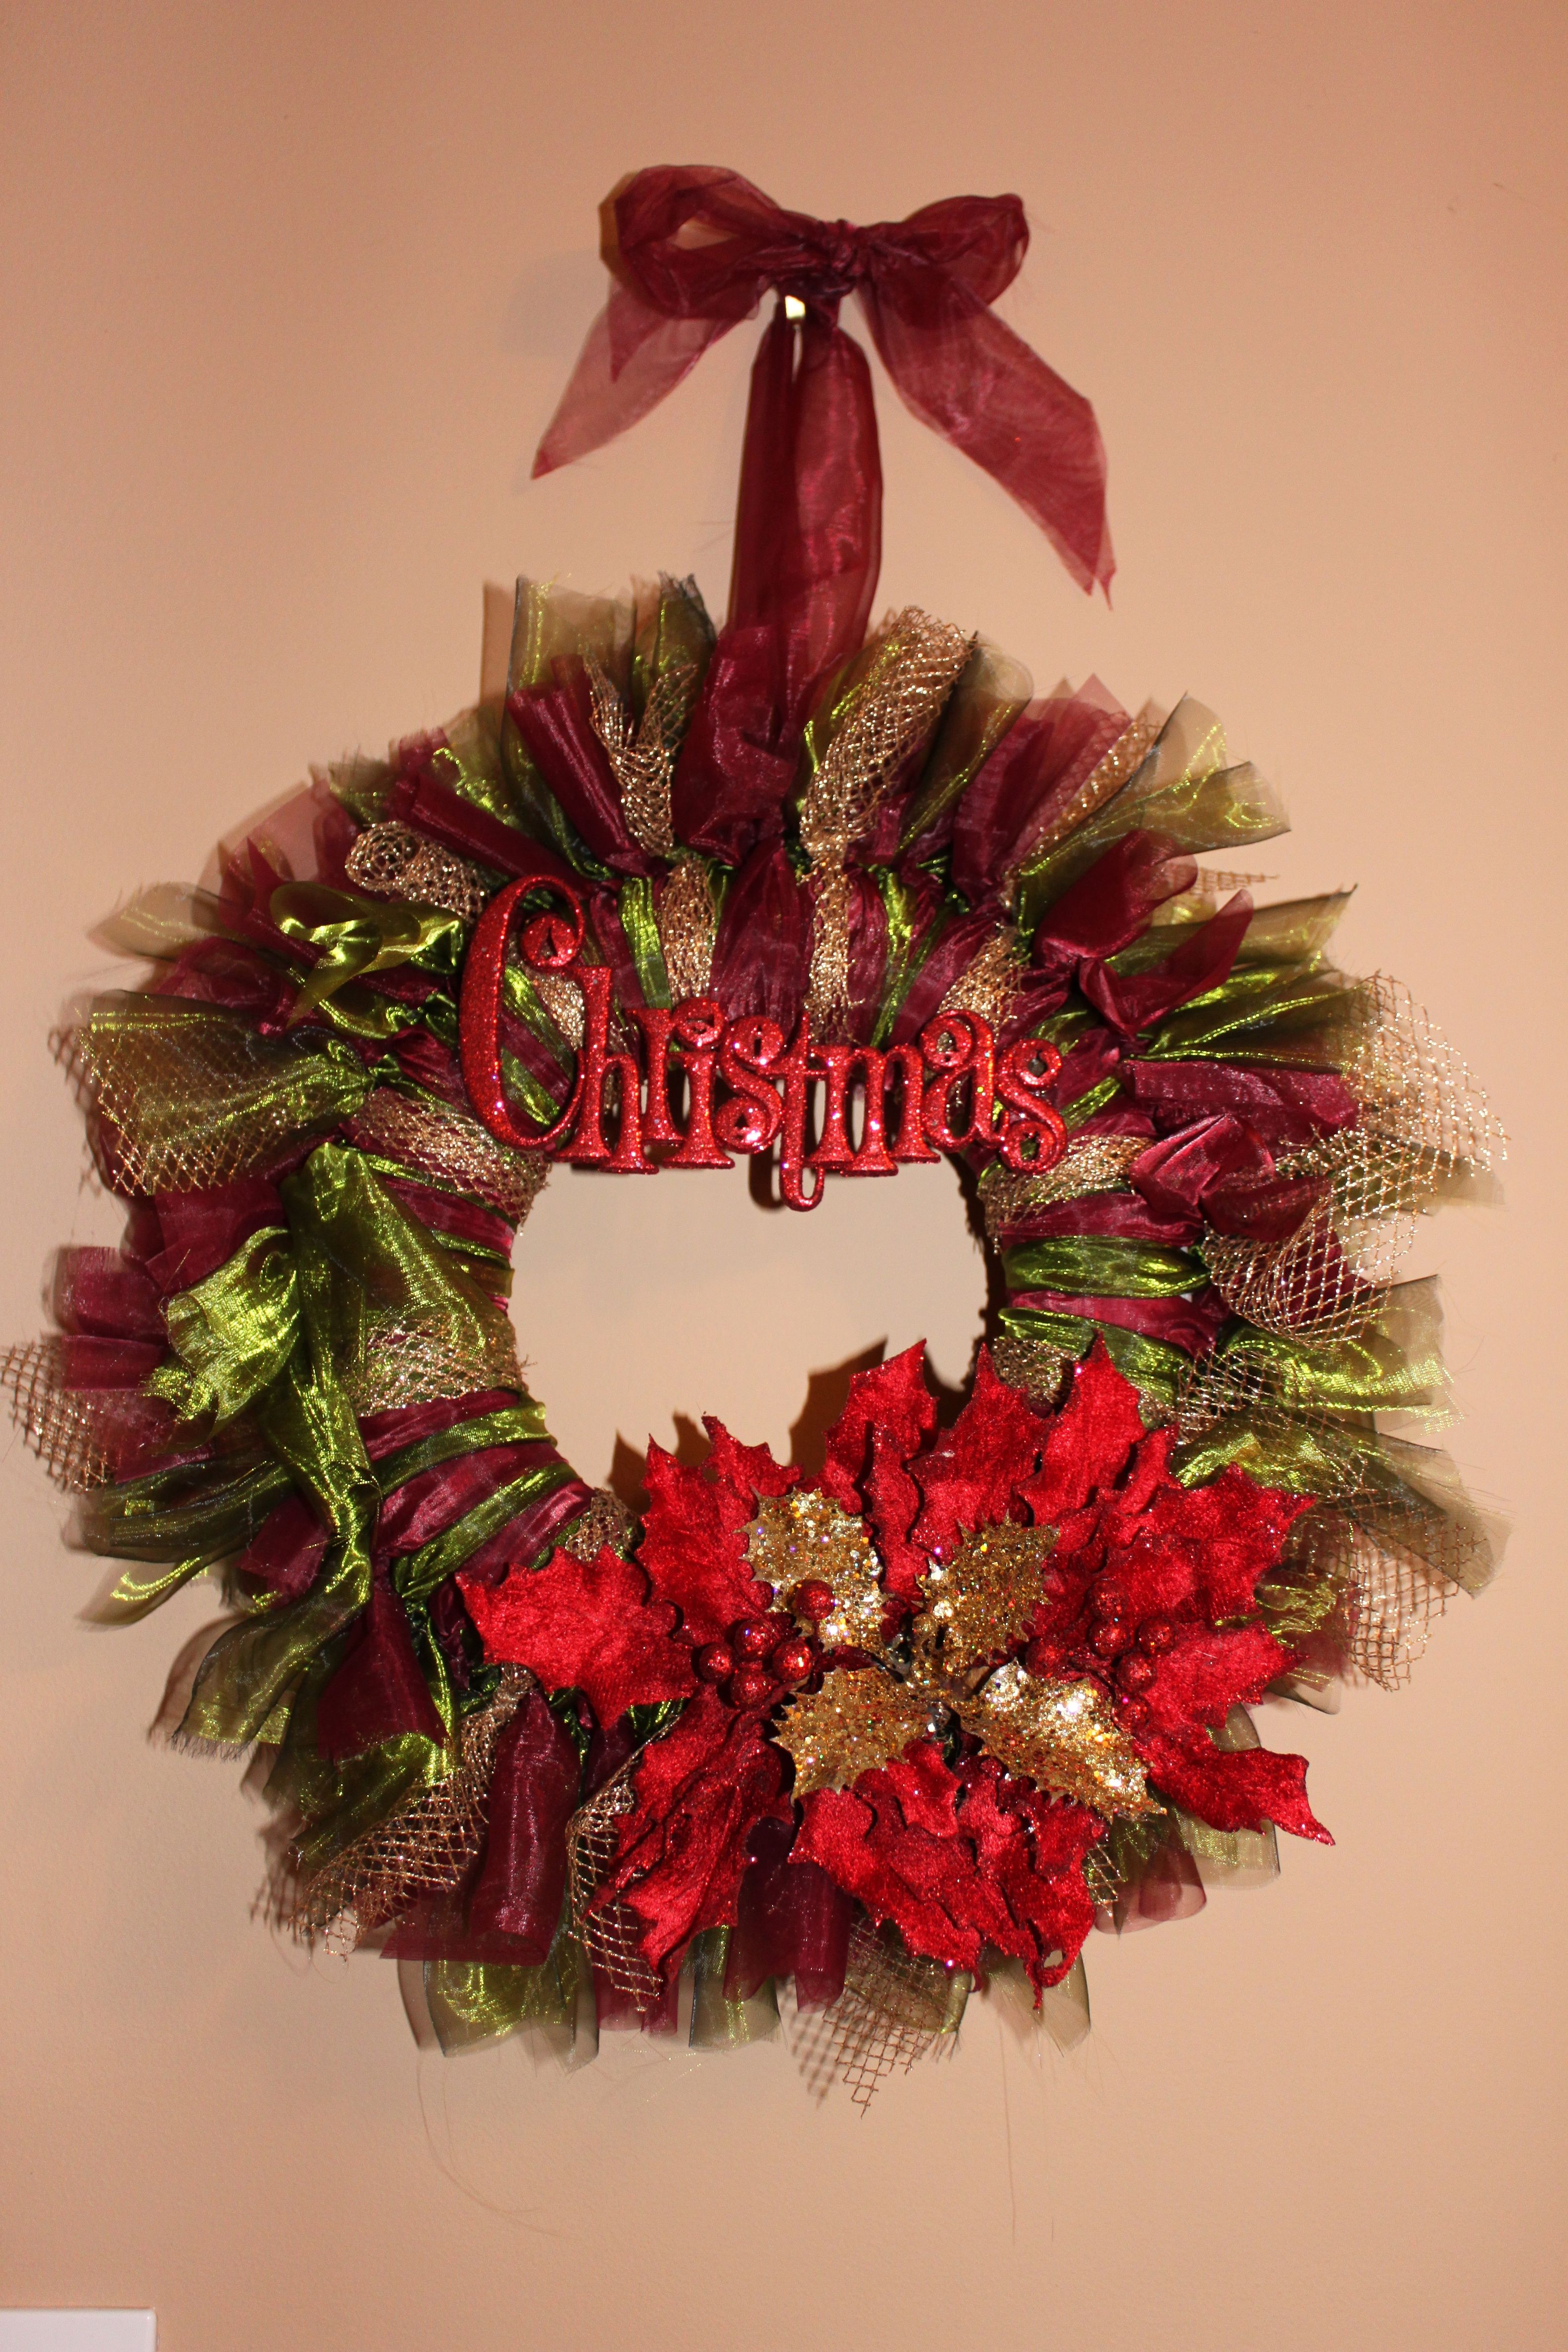 Christmas origami wreath - Christmas Wreath Tulle And Voile Crafts Pinterest Wreaths Xmas Decorations And Craft